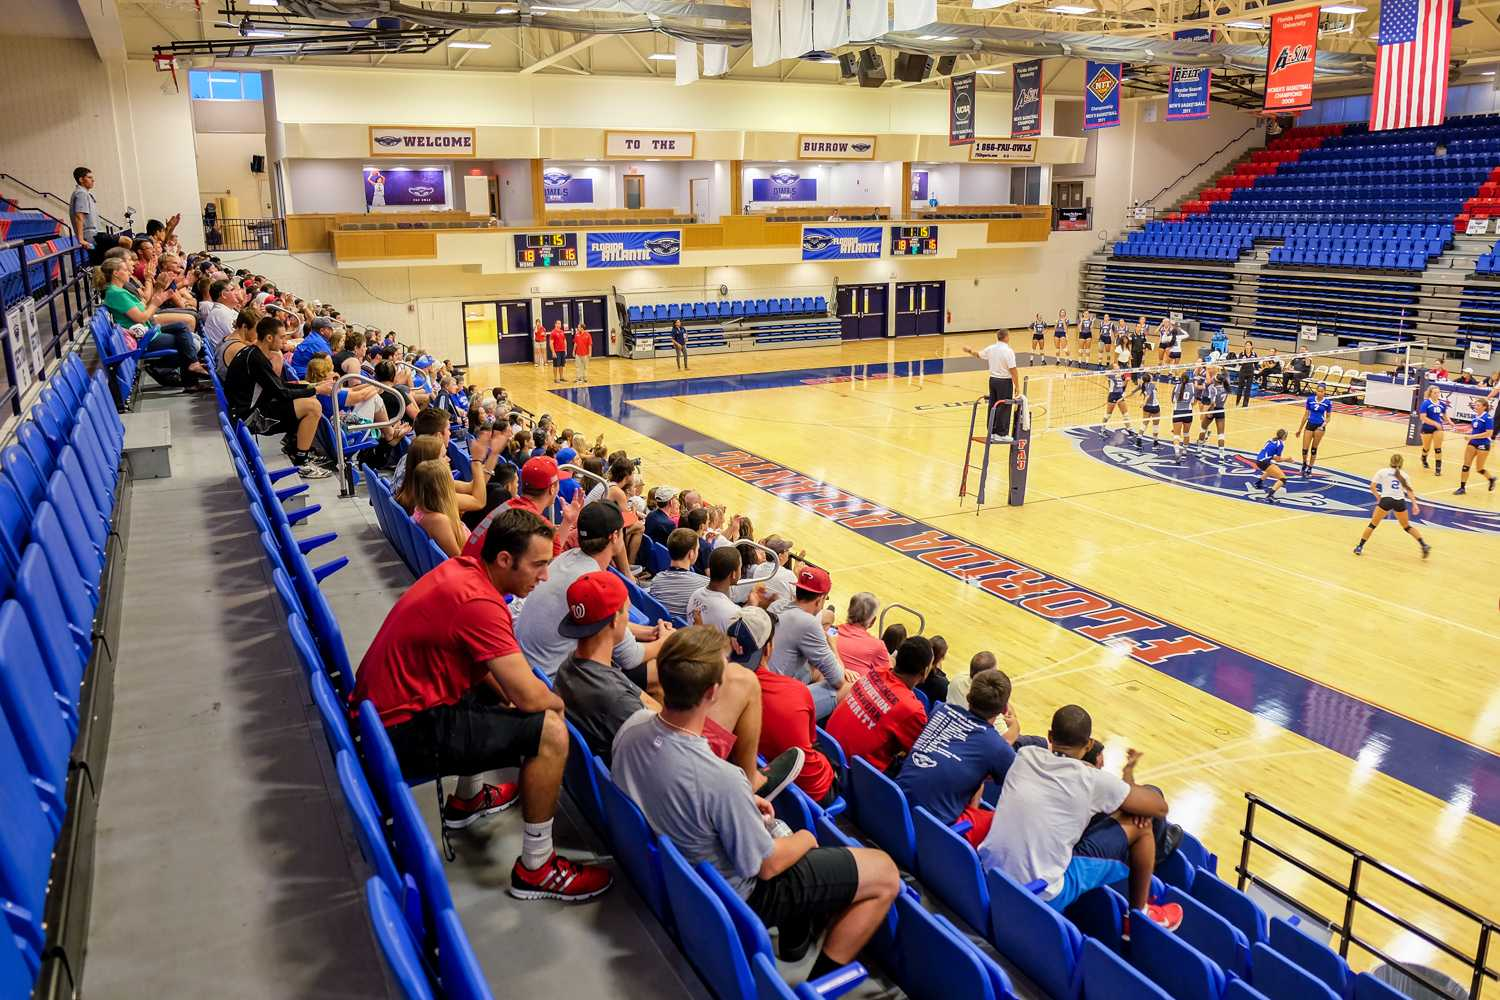 Students and family turned out for FAU's 7pm match against McNeese on Friday, August 29th. Mohammed F Emran | Web Editor